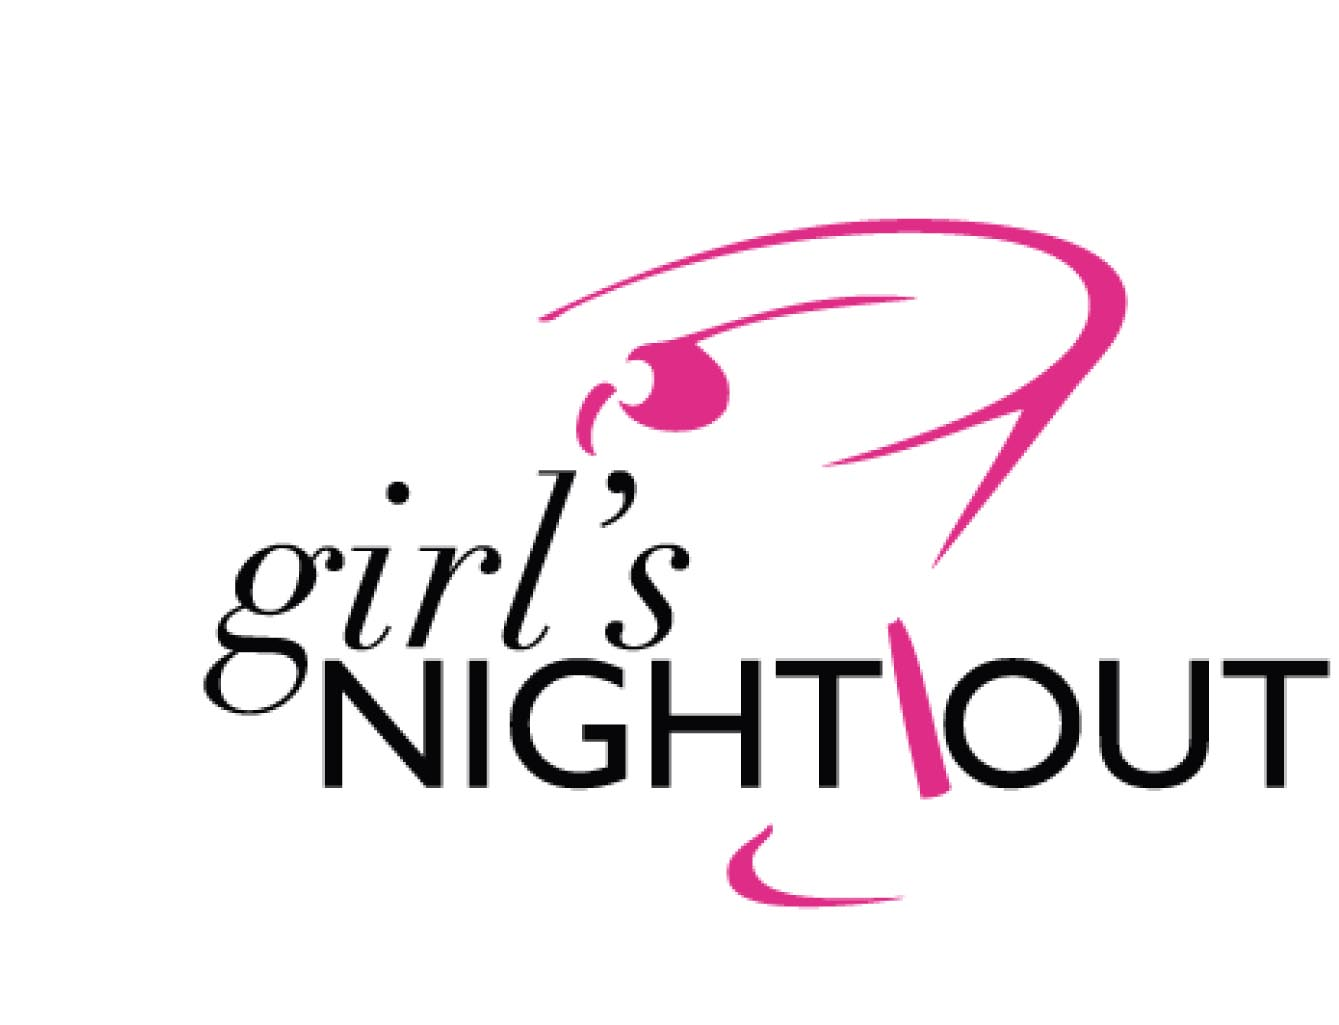 Girls Night Out Clip Art .. - Ladies Night Out Clip Art